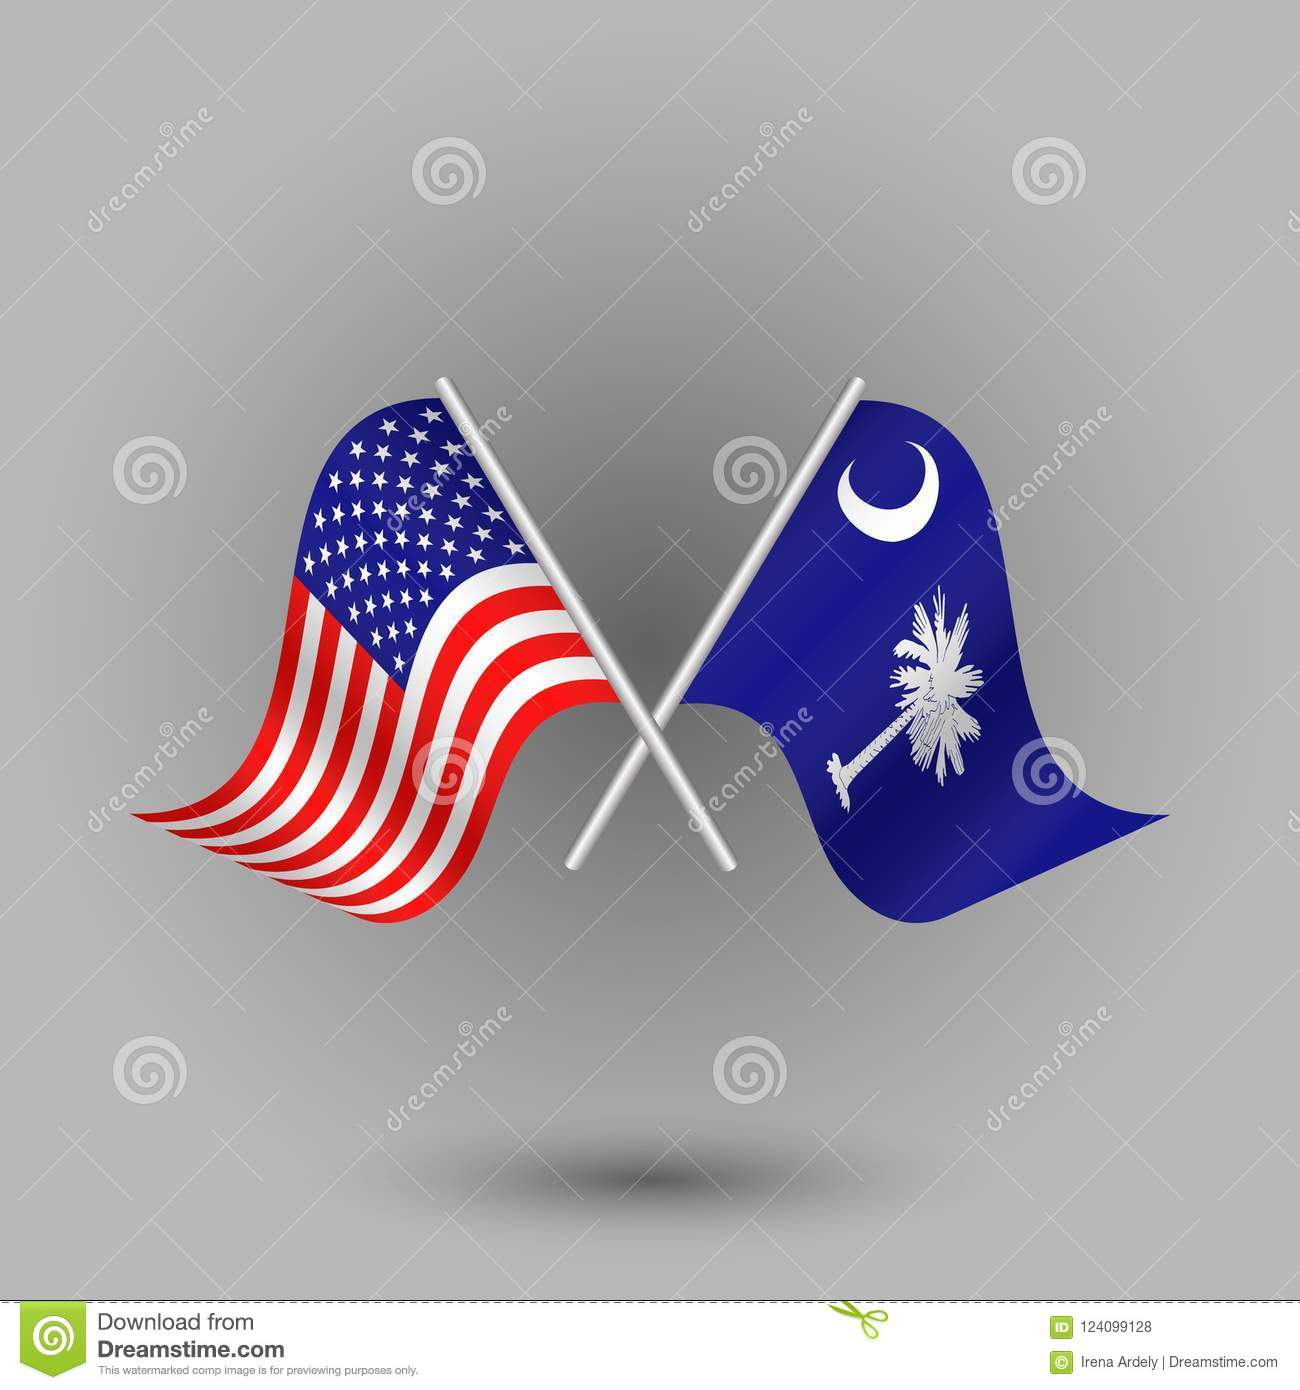 Vector Two Crossed American And Flag Of South Carolina Symbols Of